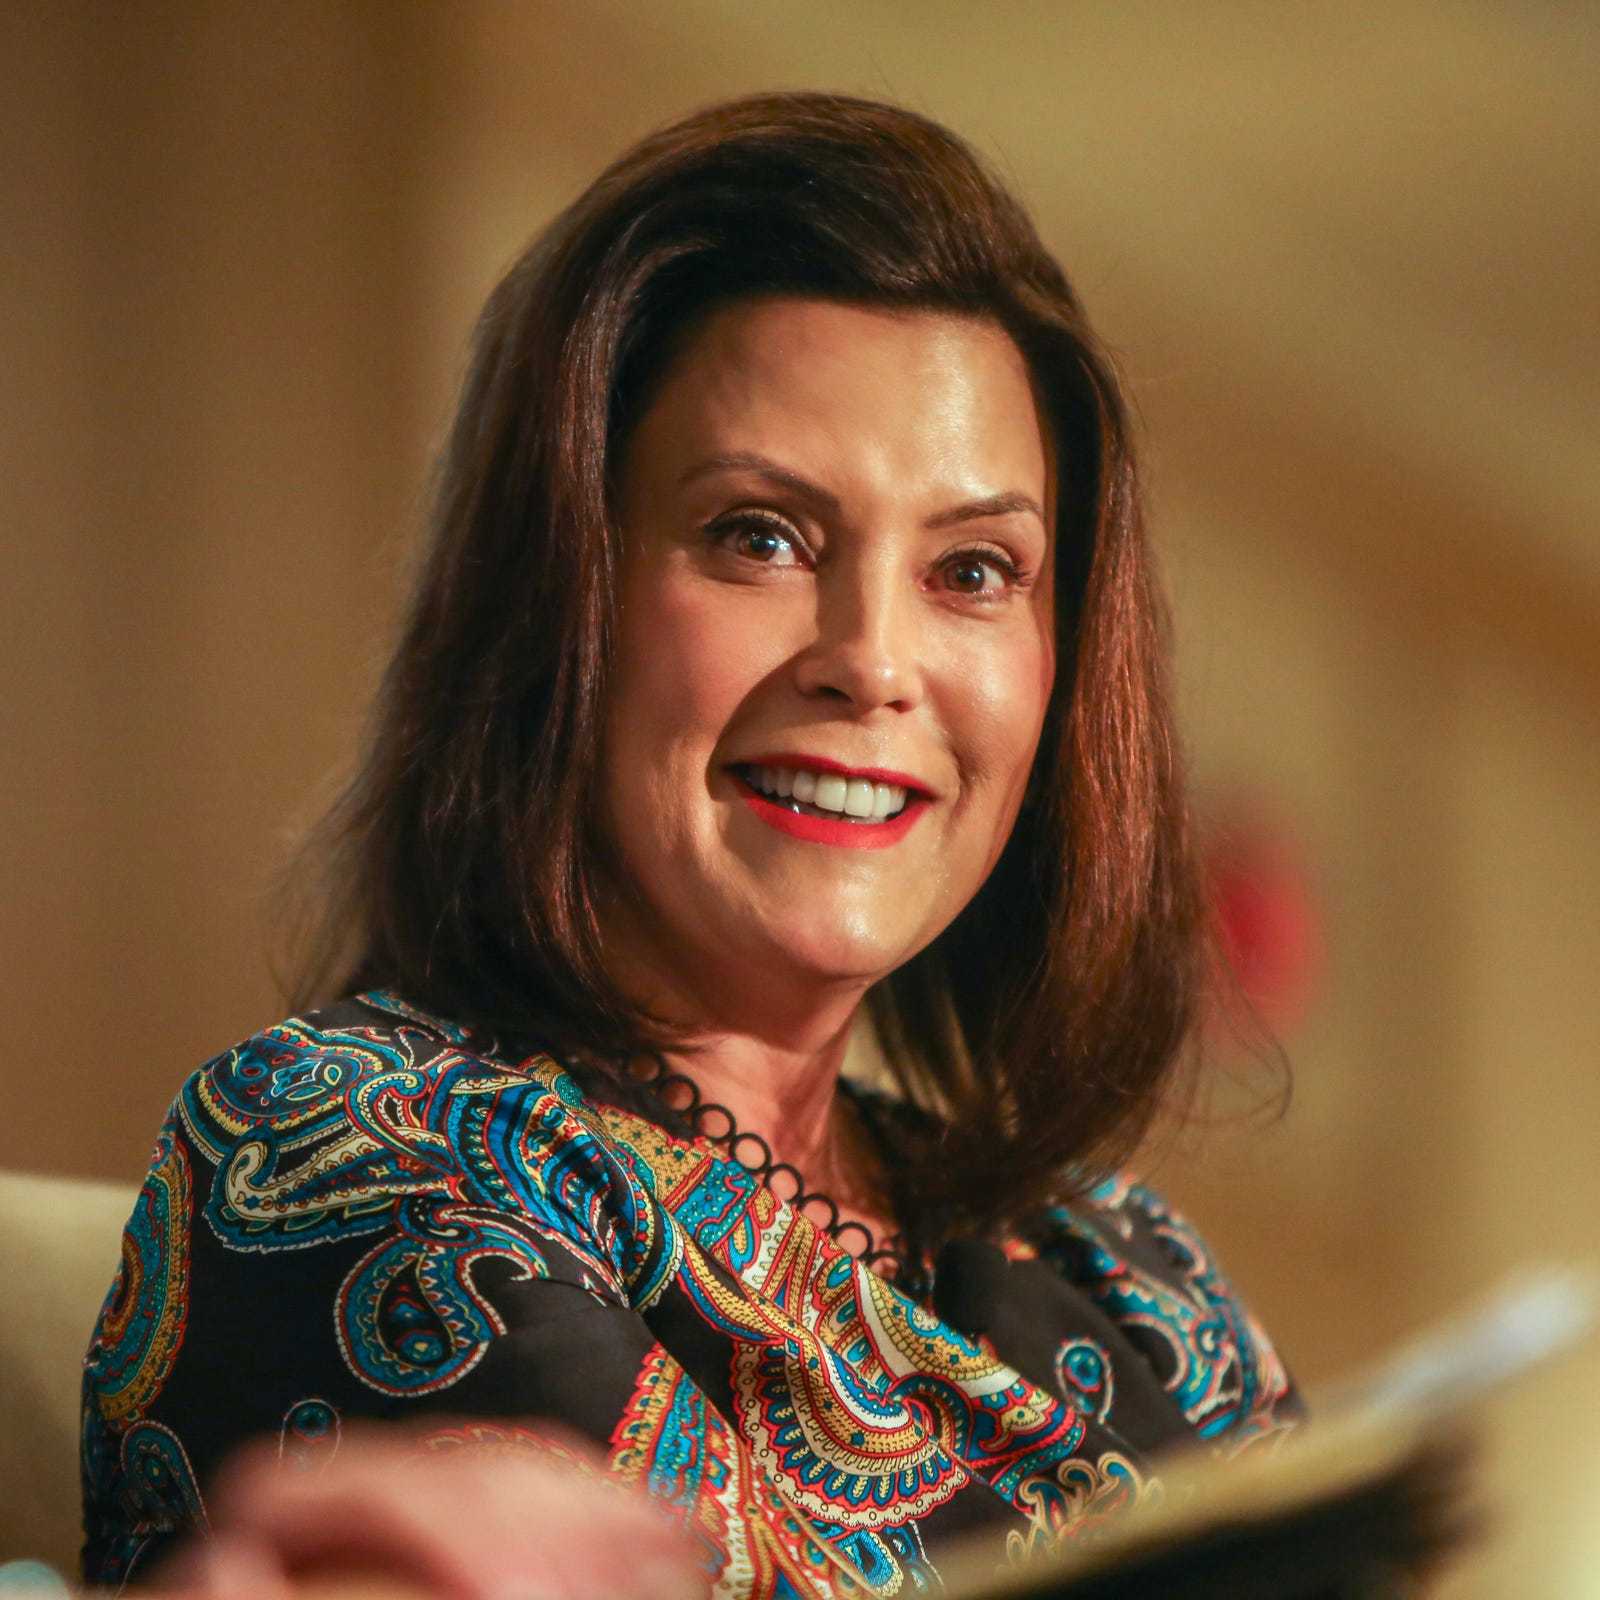 Michigan Governor Gretchen Whitmer speaks during the Detroit Free Press Breakfast Club Series sponsored by DTE Energy at the Townsend Hotel in Birmingham, Mich. on Friday, Jan. 18, 2019.